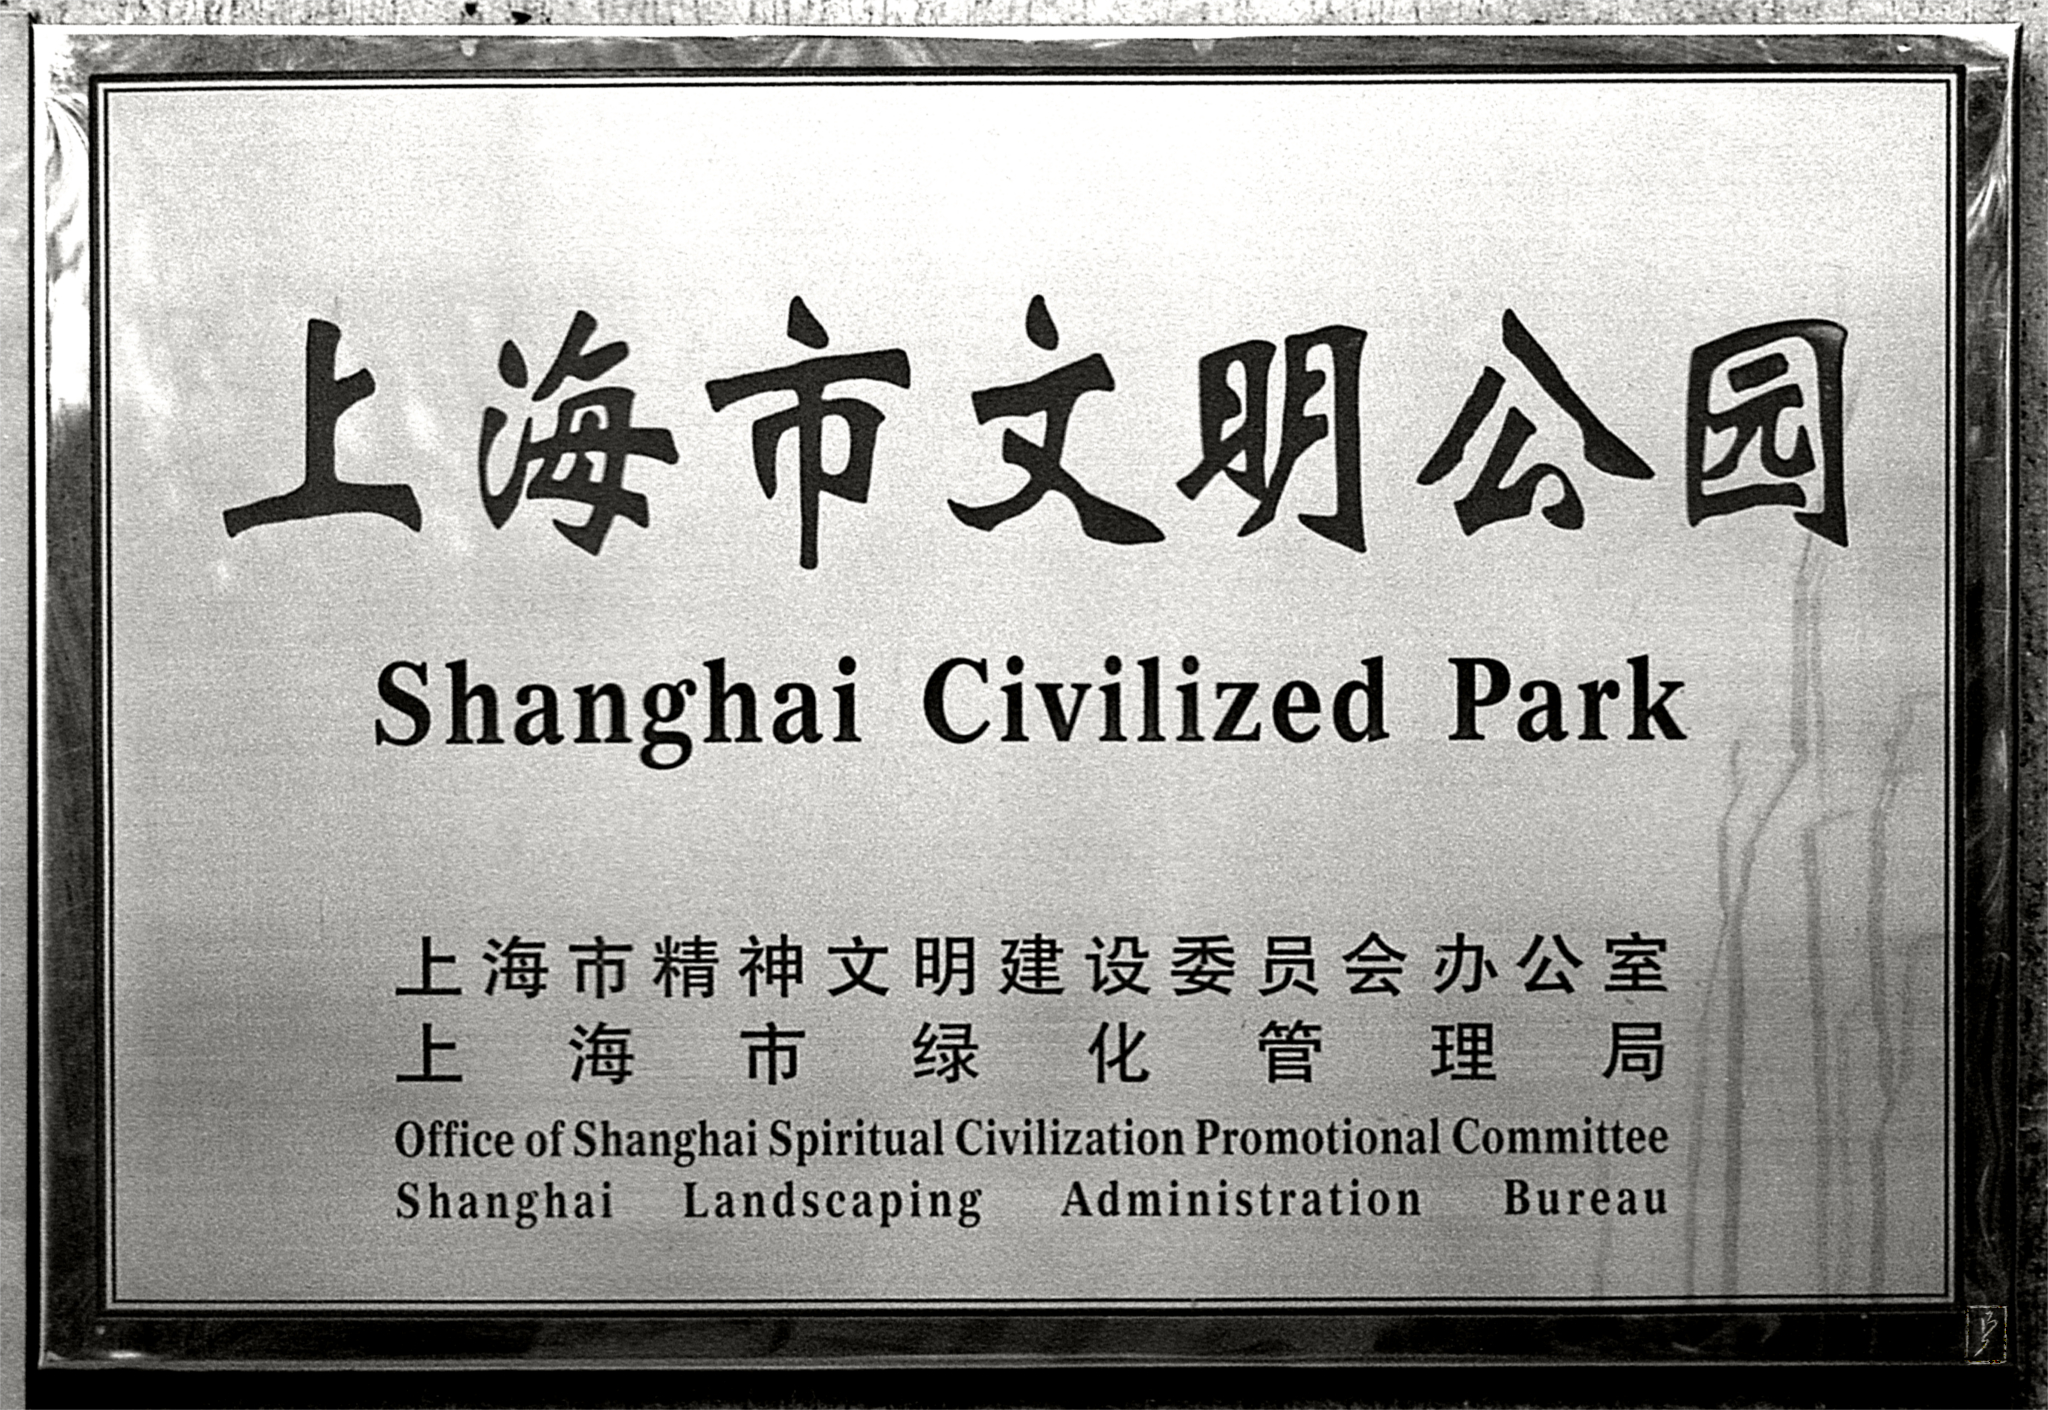 """Shanghai Civilized Park"" is not a real park, but an awaard granted to a number of parks in Shanghai, which always proudly display this sign at the entrance. Promotion of ""civilized"" behaviour was part of the campaigns in the run-up to the Expo 2010, which was held in Shanghai."